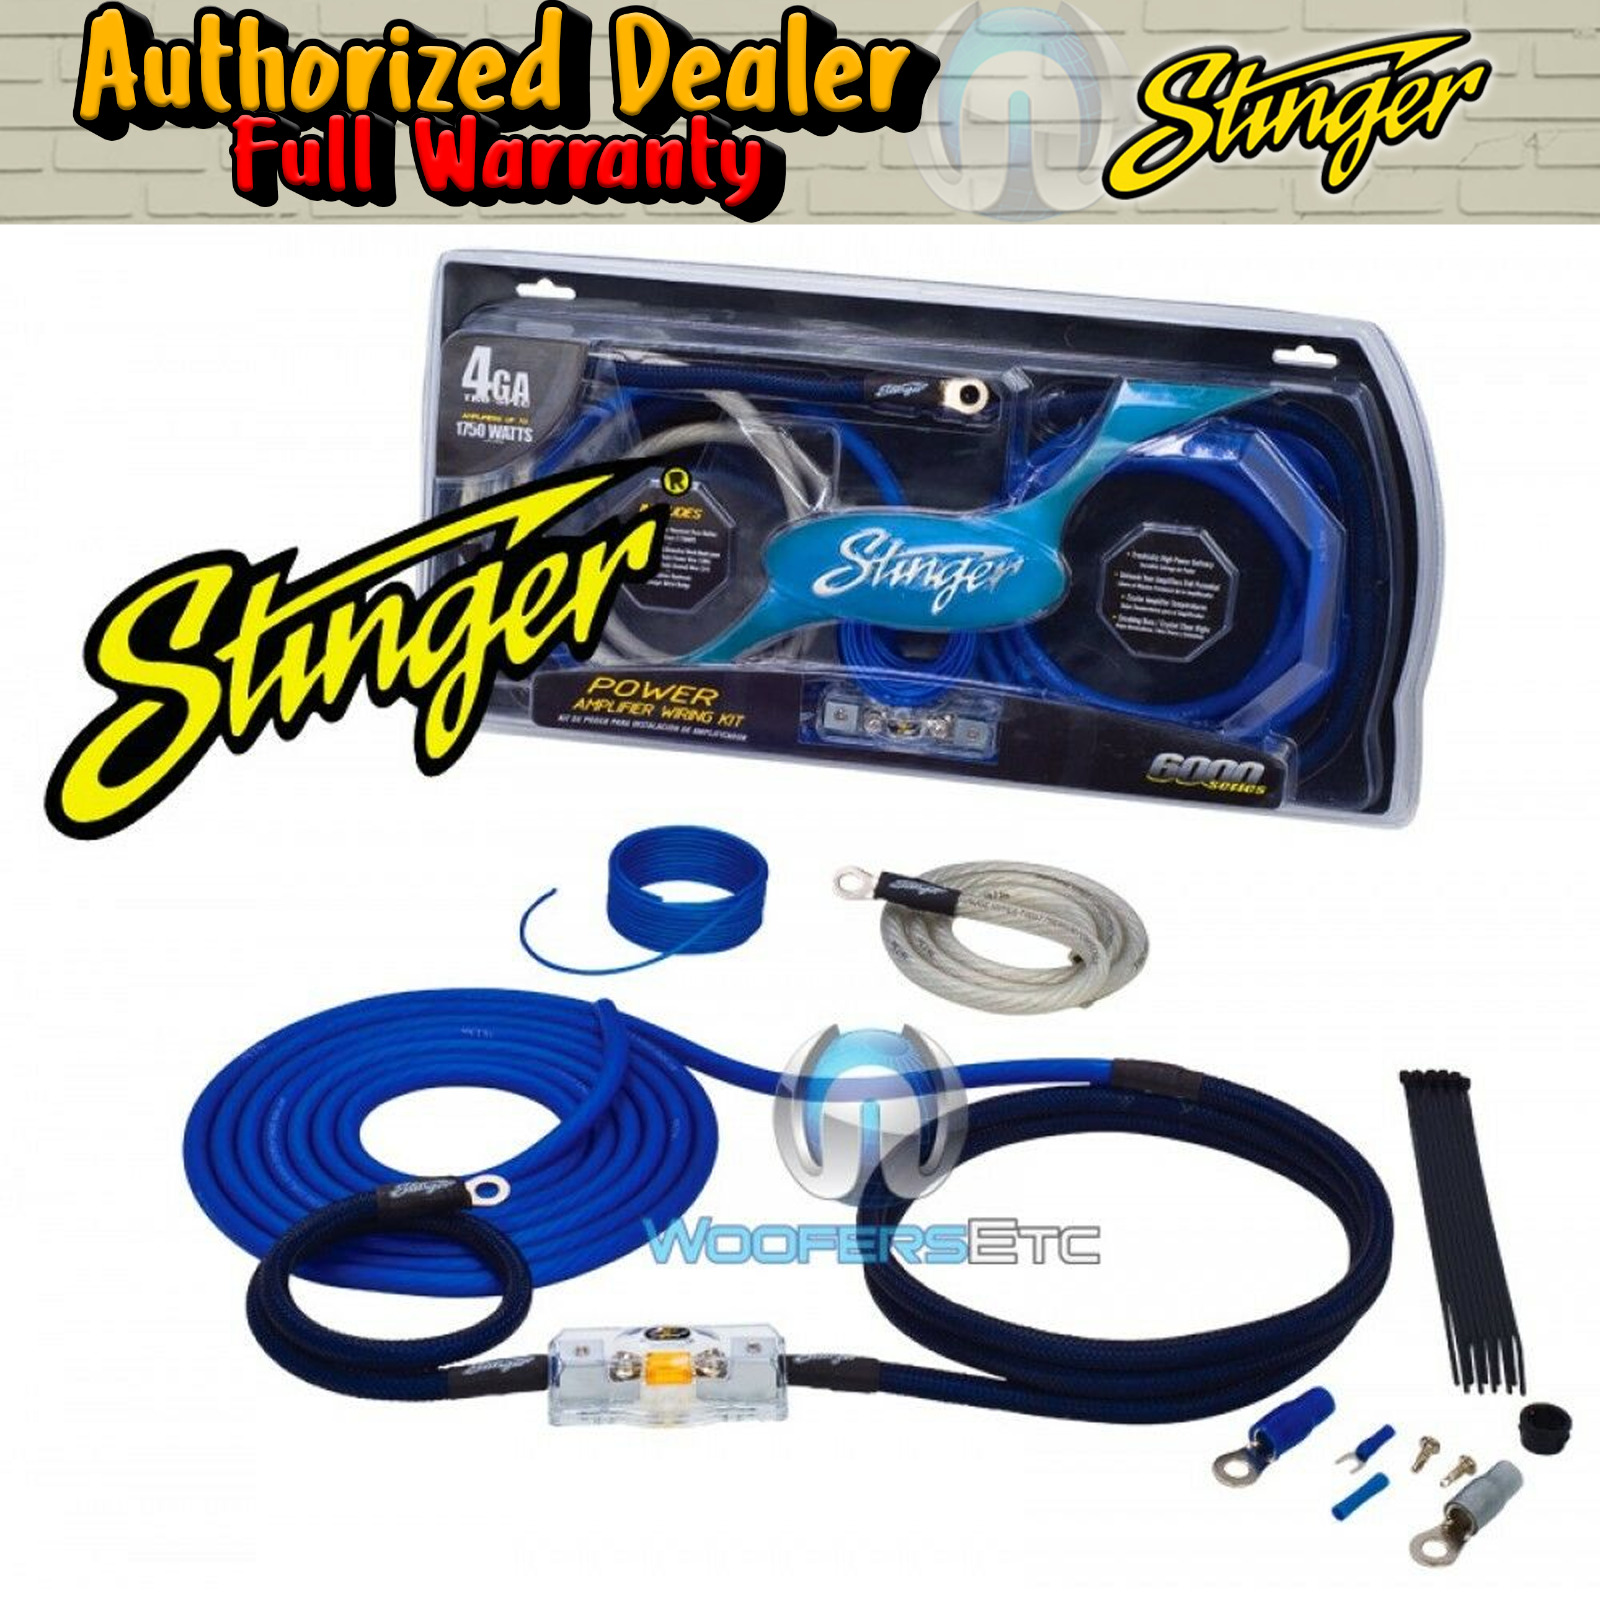 Stinger Sk6241 Car Audio Amp 4 Gauge Wire Amplifier Pro Wiring Installation Kits Install Kit New 1 Of 1free Shipping